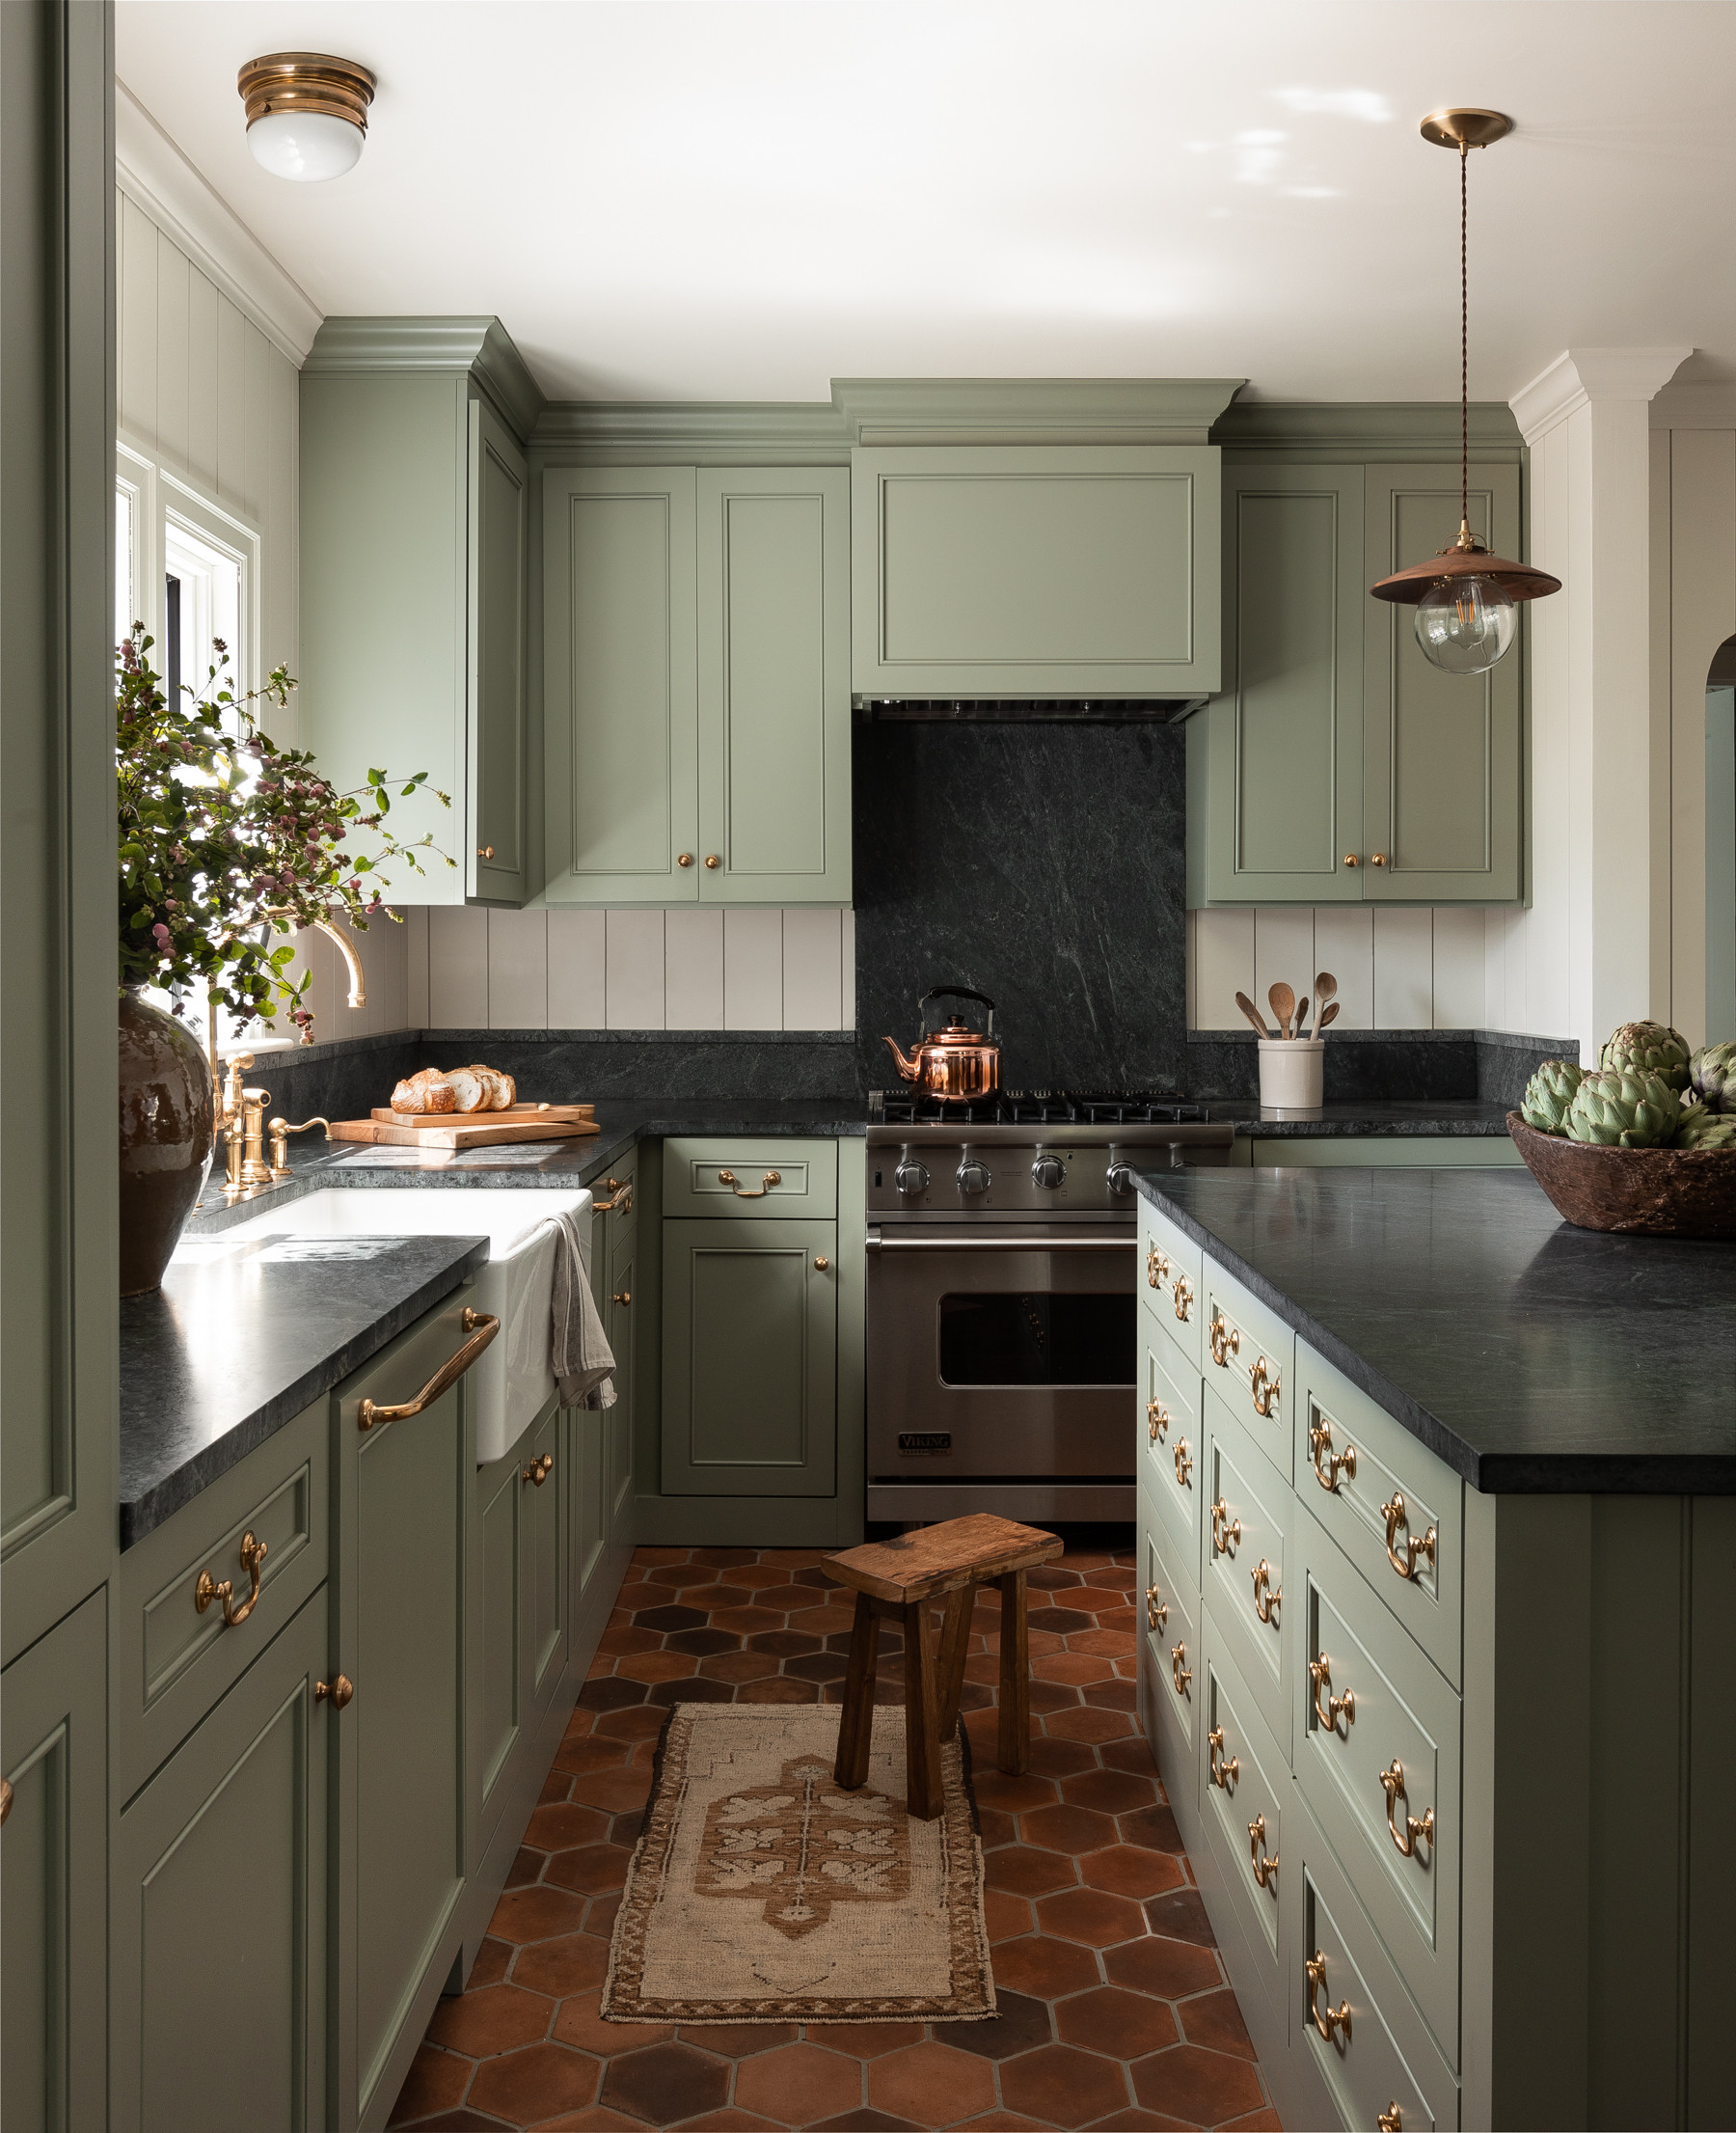 75 Beautiful Kitchen With Black Backsplash Pictures Ideas November 2020 Houzz